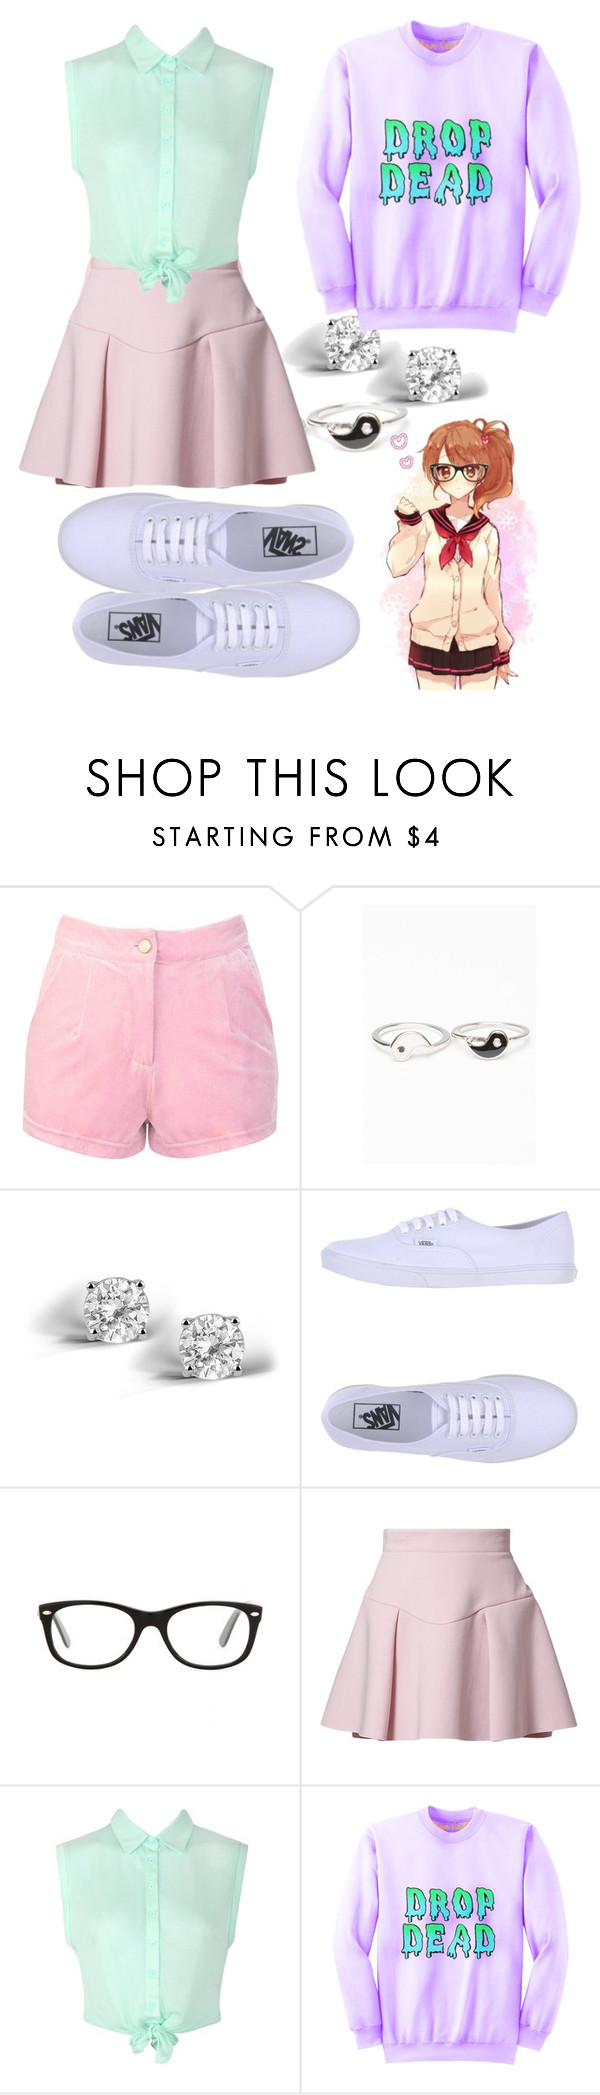 """""""Anime outfit tag ;3"""" by unicorns-are-magical ❤ liked on Polyvore featuring Glitzy Rocks, Vans, CHI, Ray-Ban, Just Cavalli, Ally Fashion and As Is"""